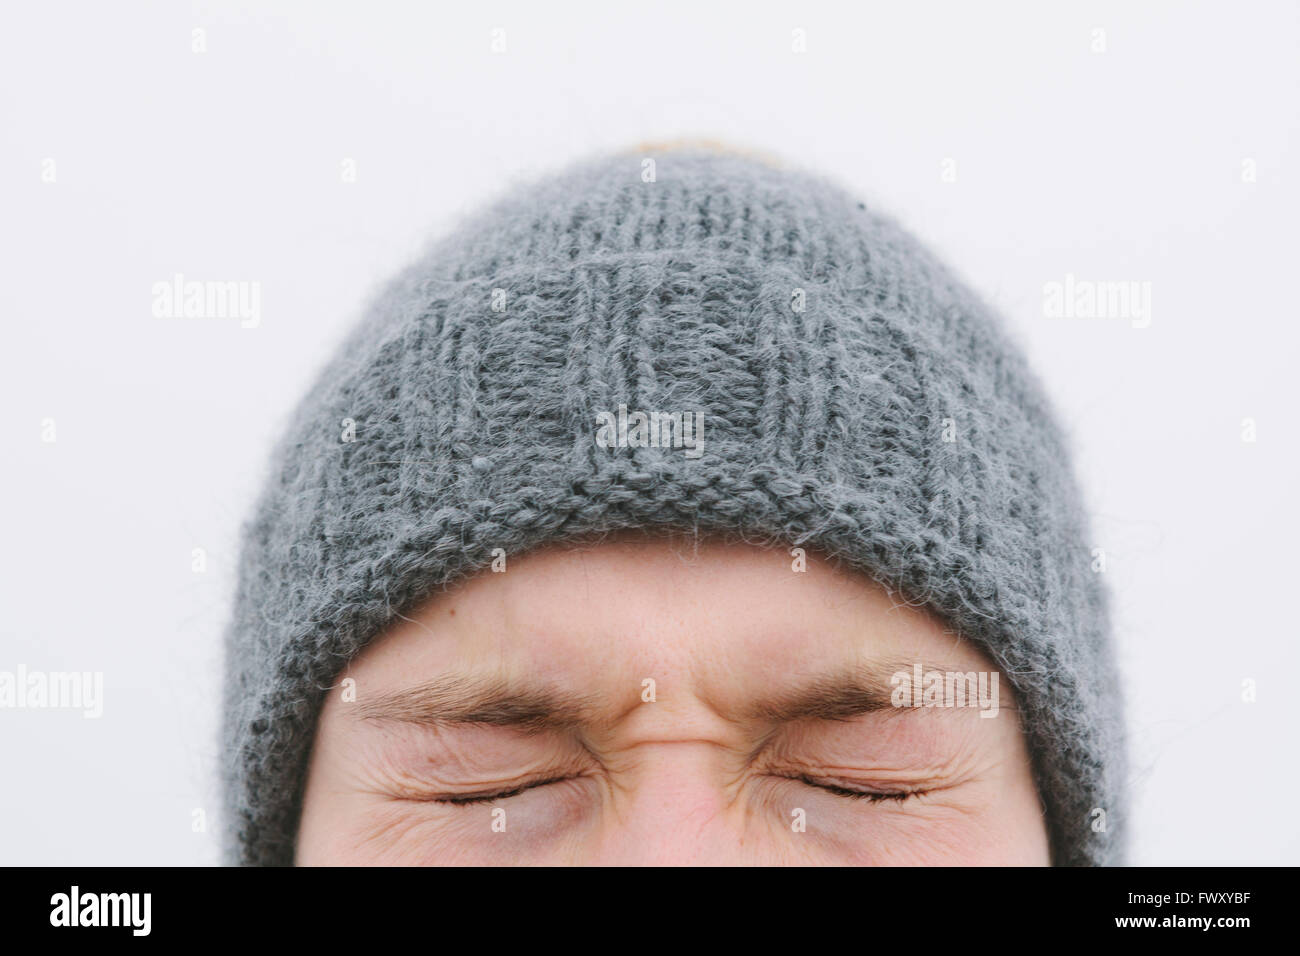 Finland, Helsingfors, High section shot of young man's face with eyes closed tight - Stock Image